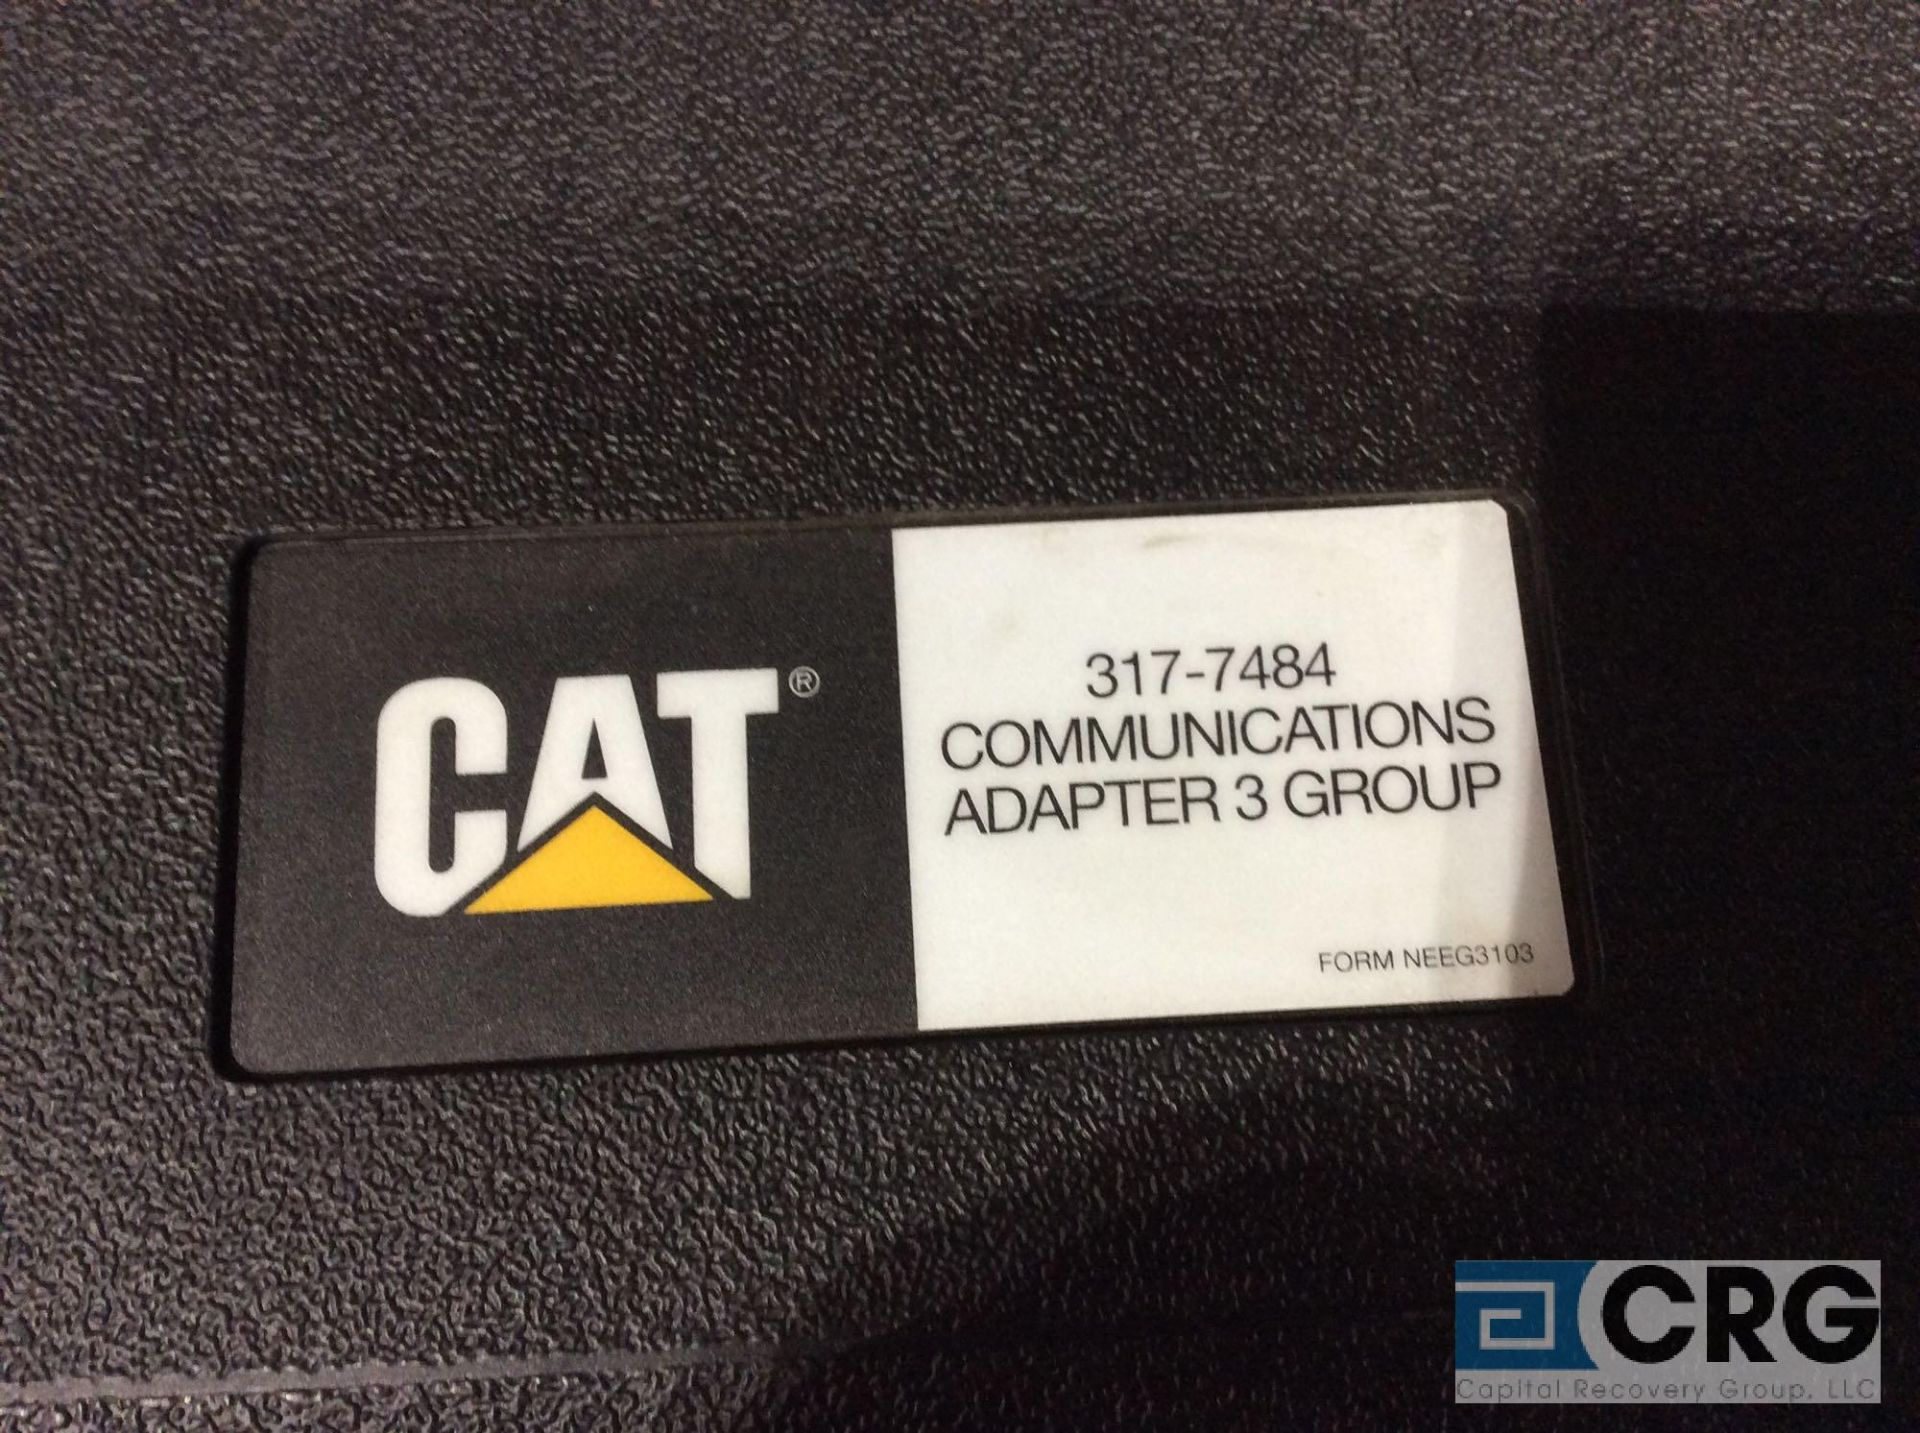 Lot 449 - CAT 317-7484 communications adapter 3 group test kit